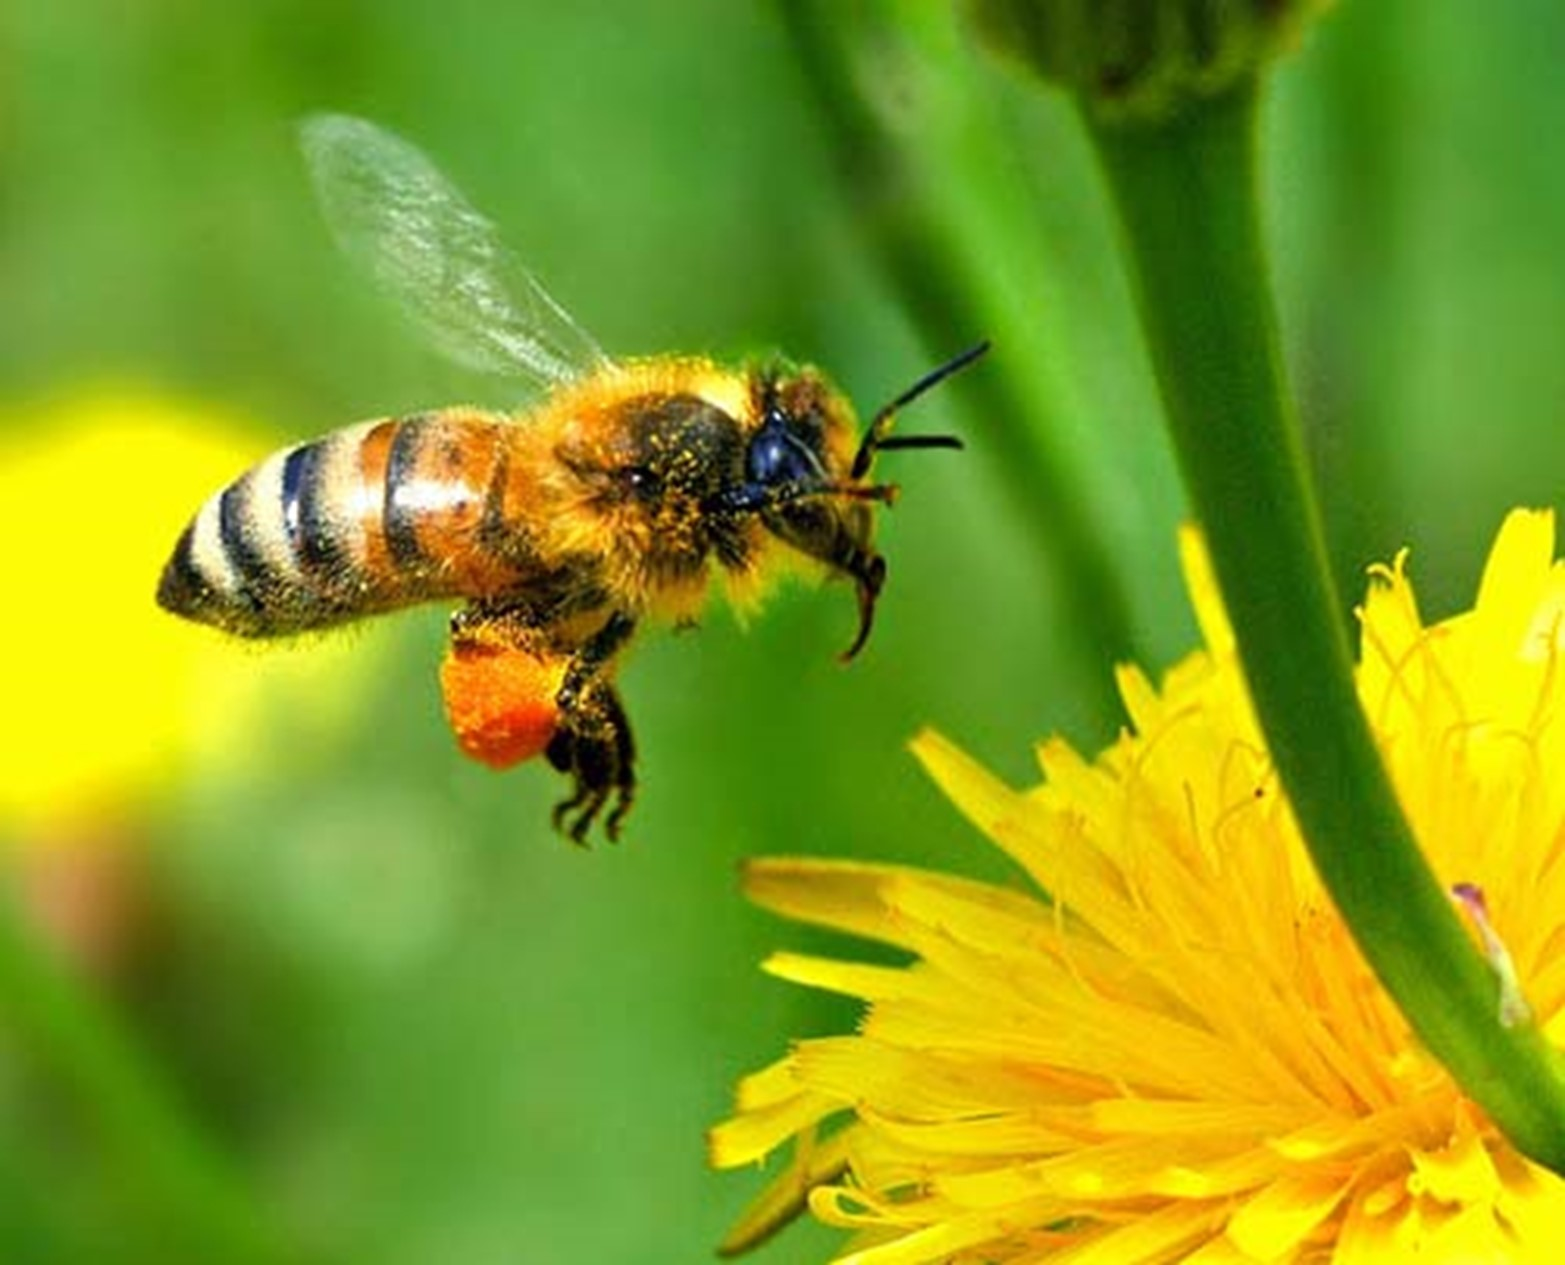 Protecting Your Home from Unwanted Beehives